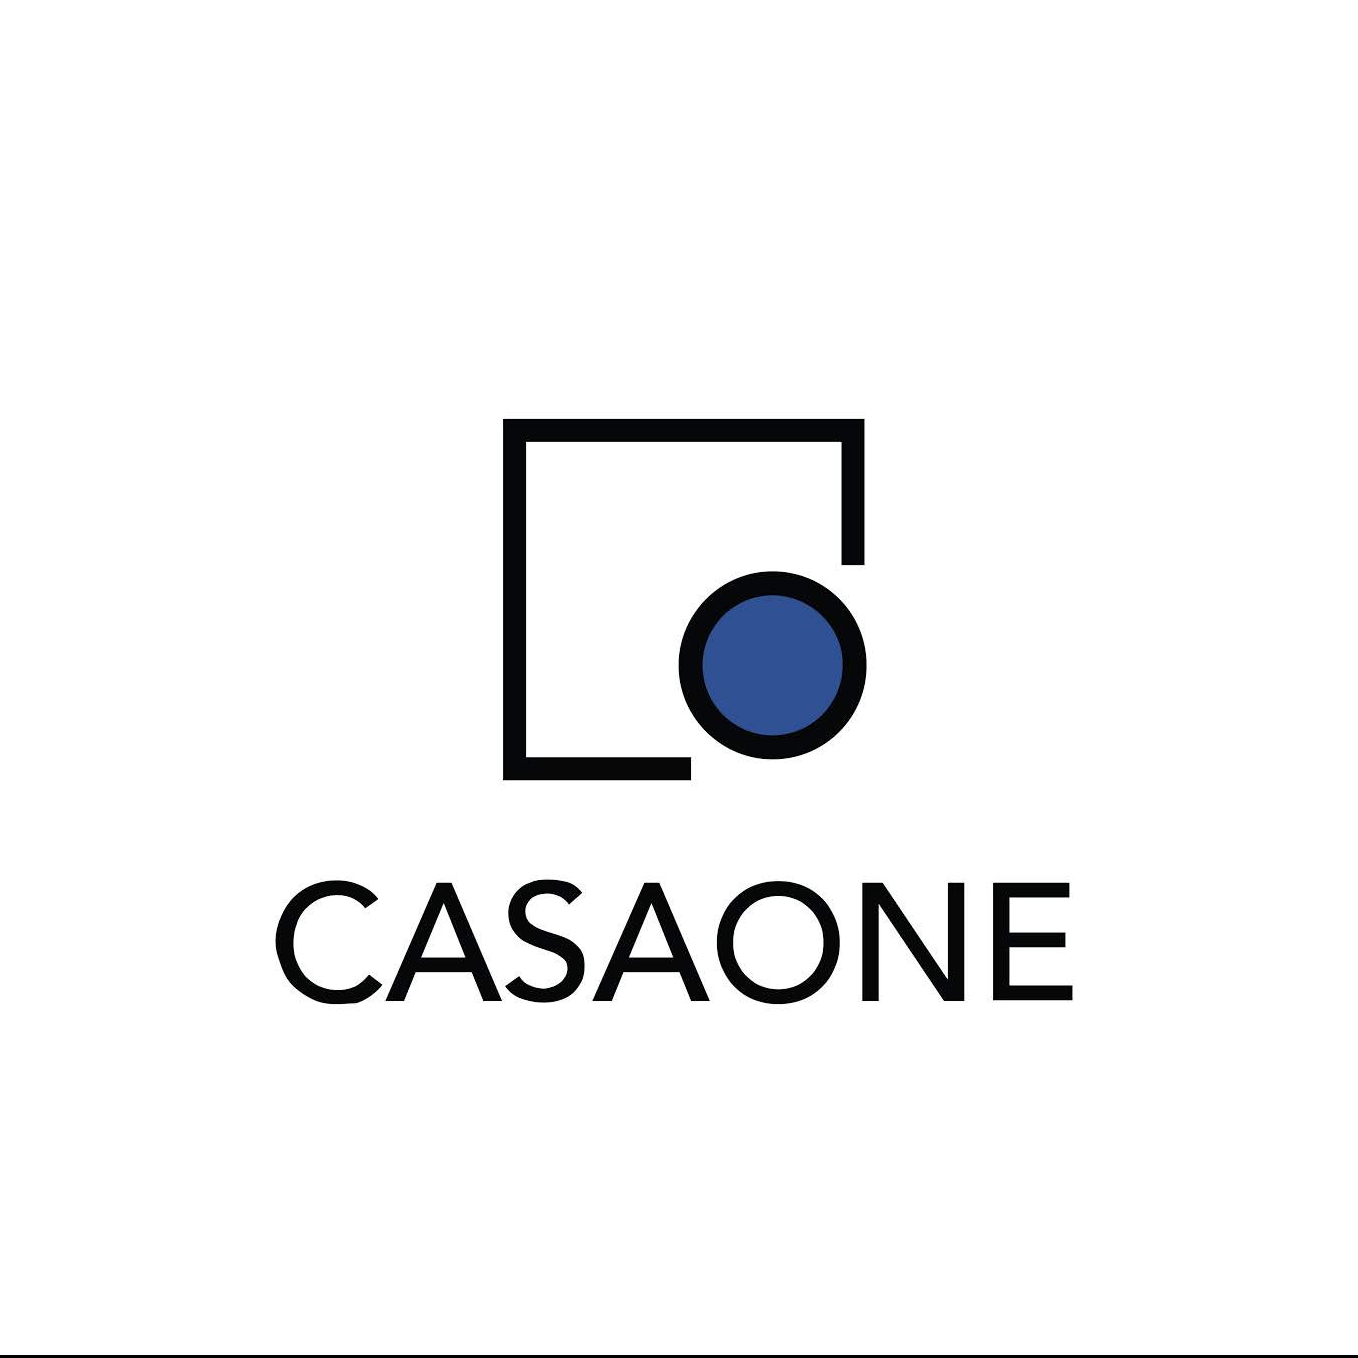 Casaone Dylan Chou's User Image